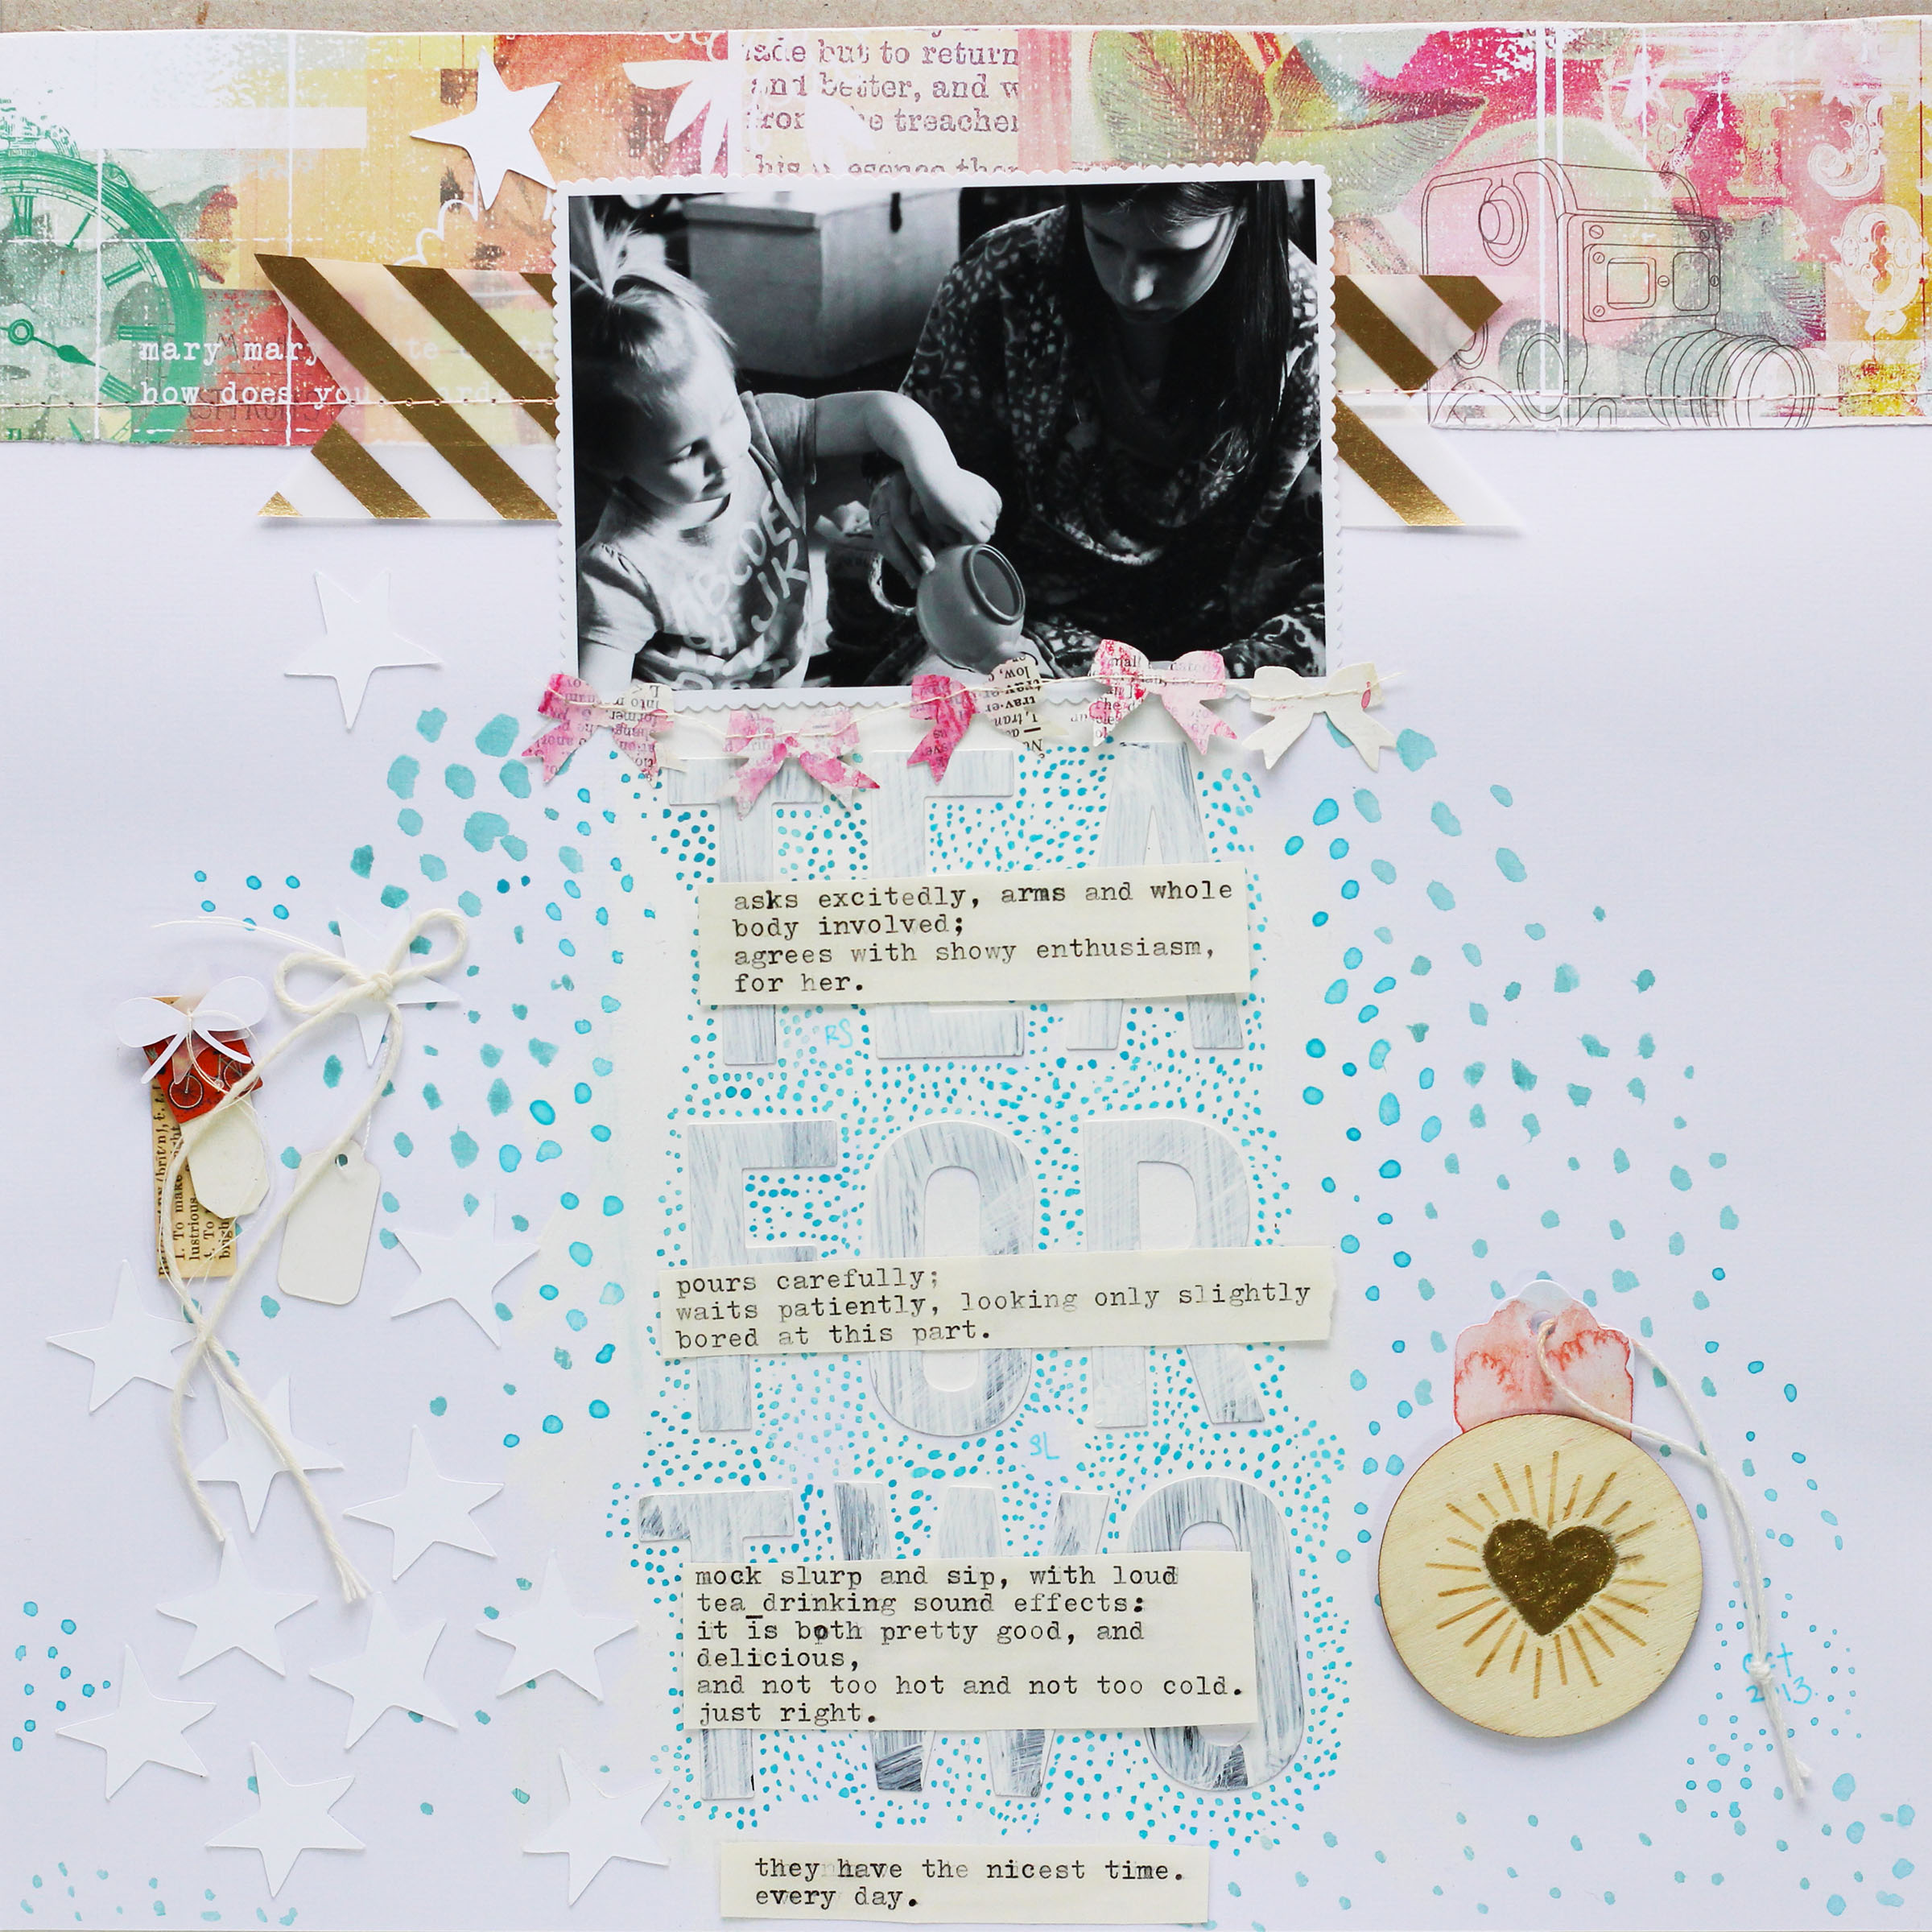 Tea for Two by Ashley Calder   Supplies: patterned paper by Studio Calico; vellum by My Mind's Eye; tags by Basic Grey, Things That Shine, and other; letter stickers by Pebbles; bow garland by Things That Shine; wood veneer by American Crafts; watercolor by Winsor & Newton; cut files by Cocoa Daisy.